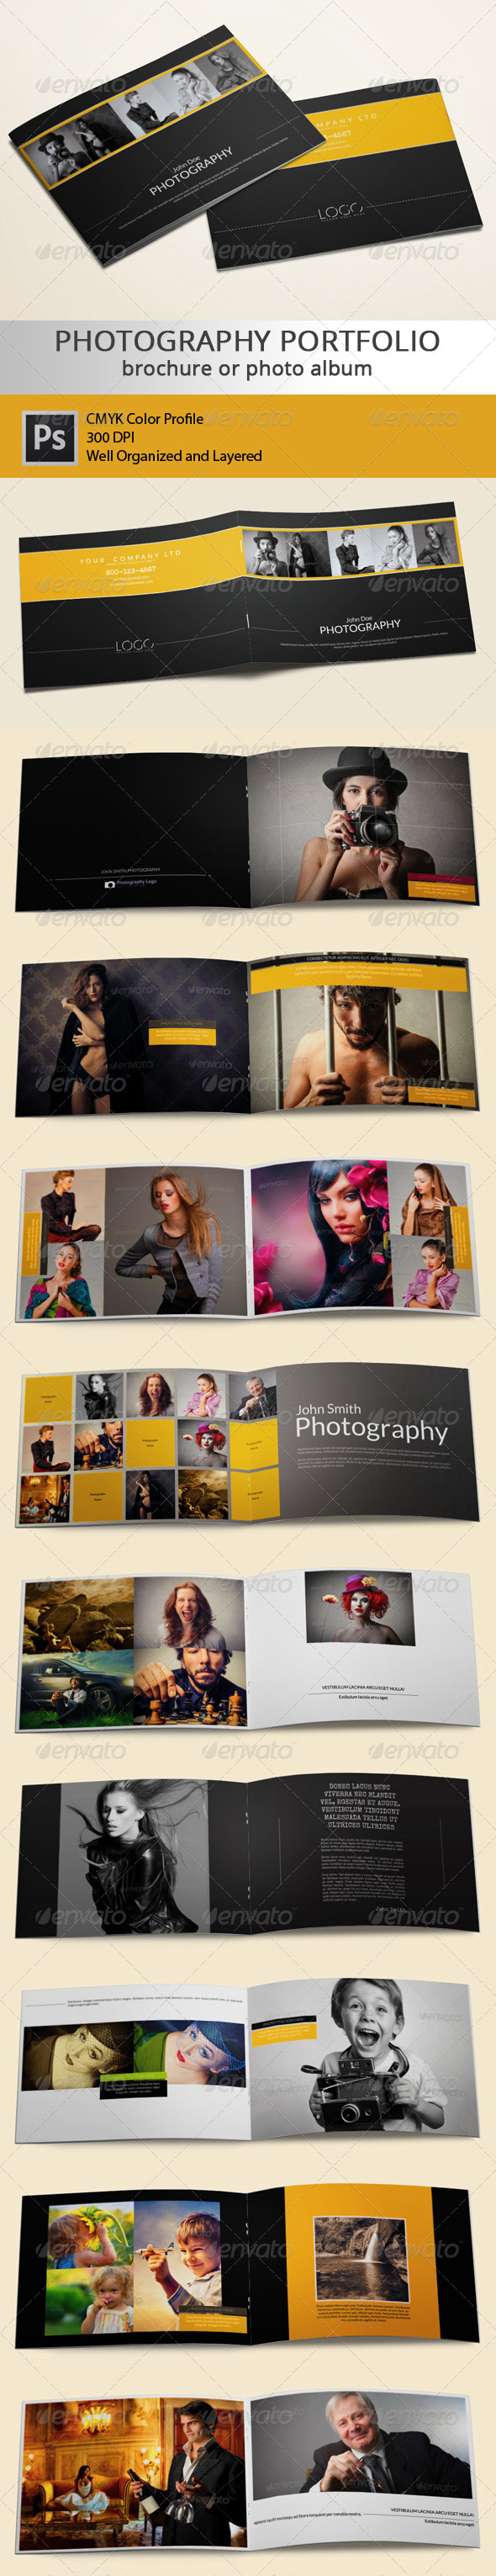 GraphicRiver 20 Pages Photography Portfolio or Photo Album 6332899